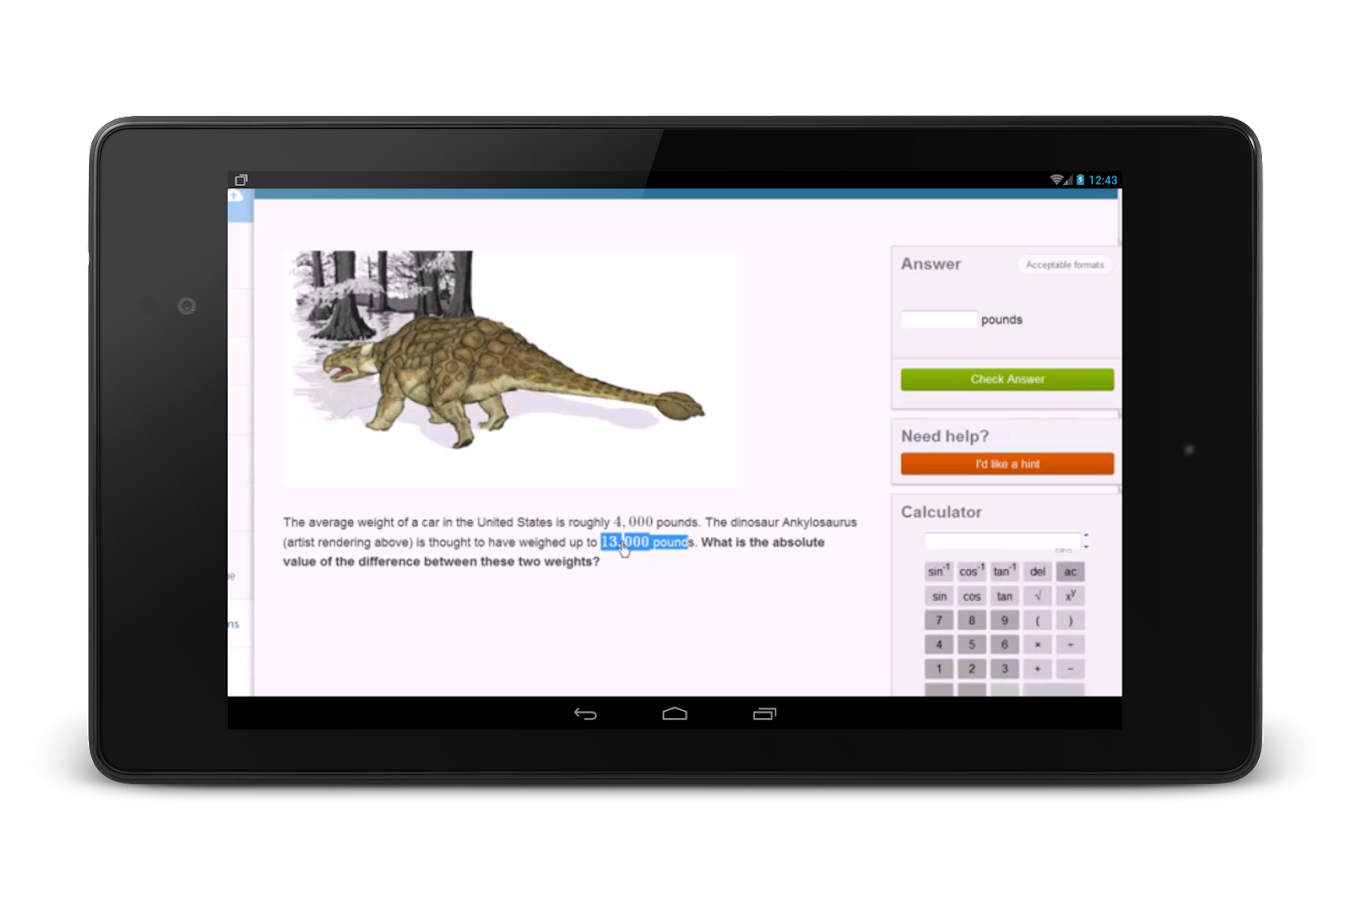 algebra tutoring course android apps on google play algebra tutoring course screenshot